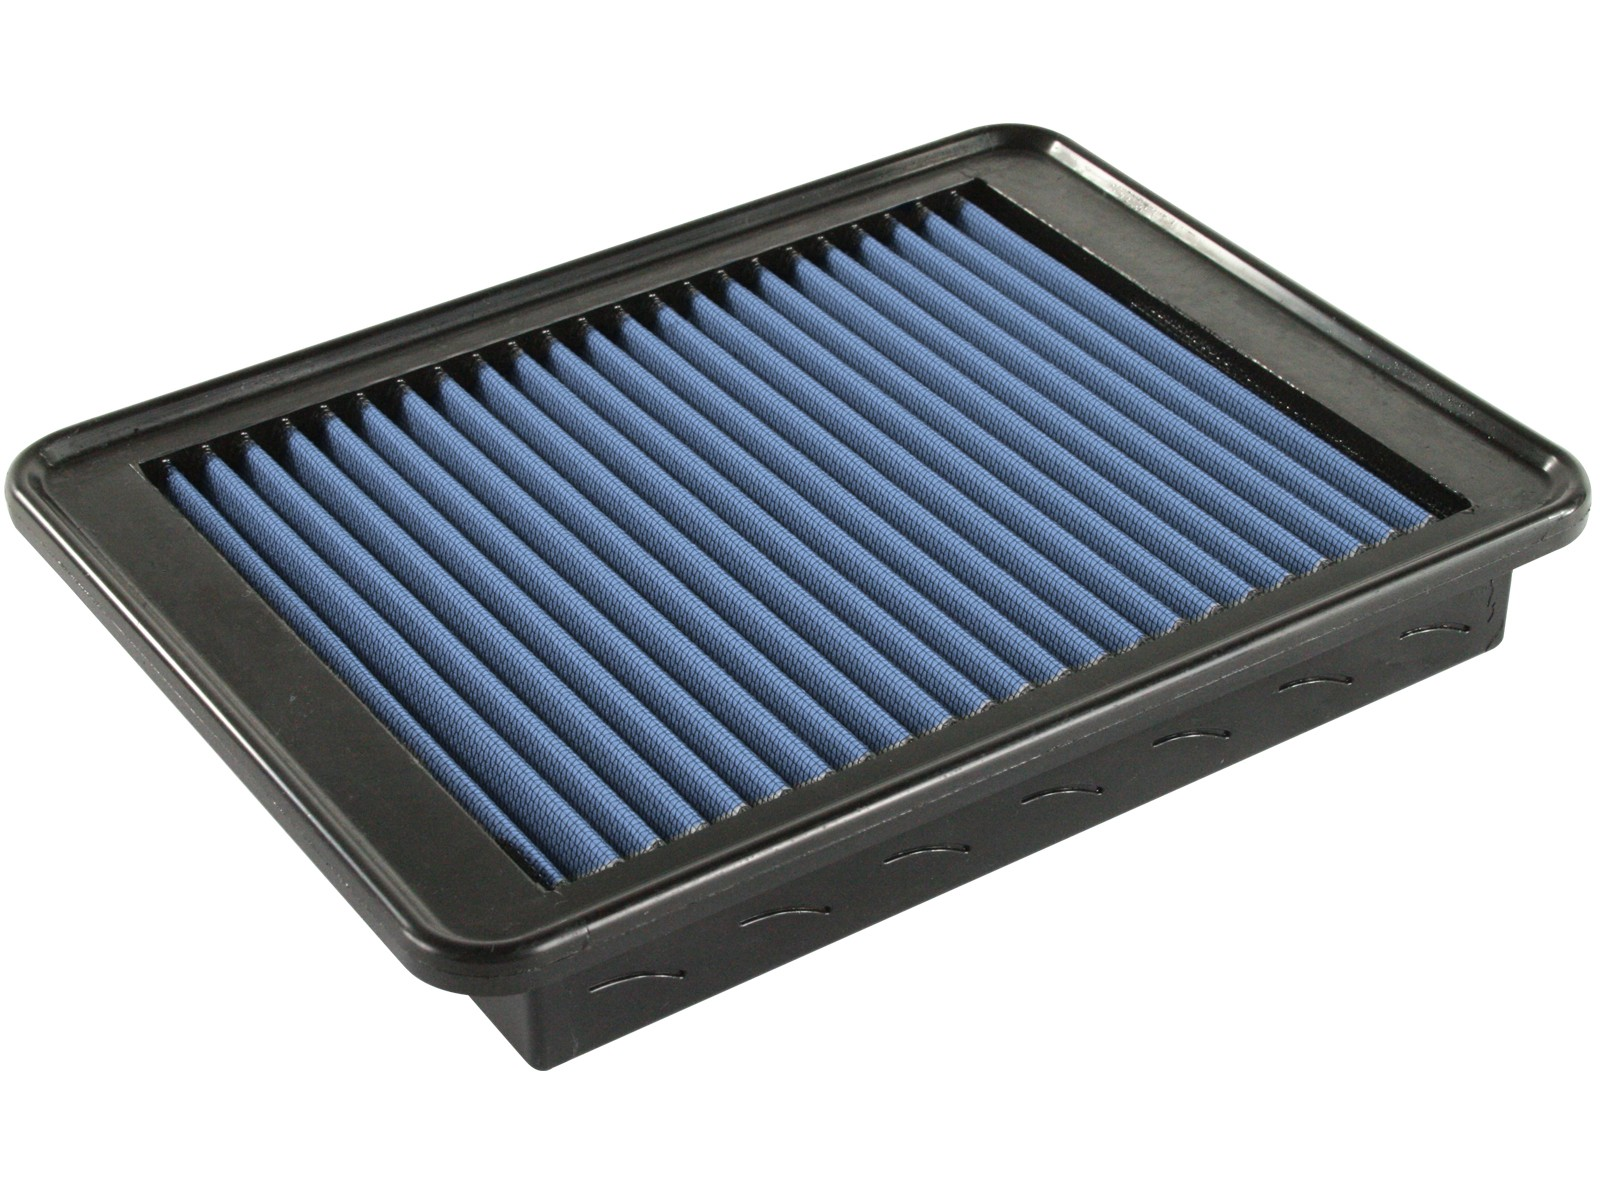 aFe POWER Tundra Magna FLOW Pro 5R Air Filter 2000-2006 Ships Free